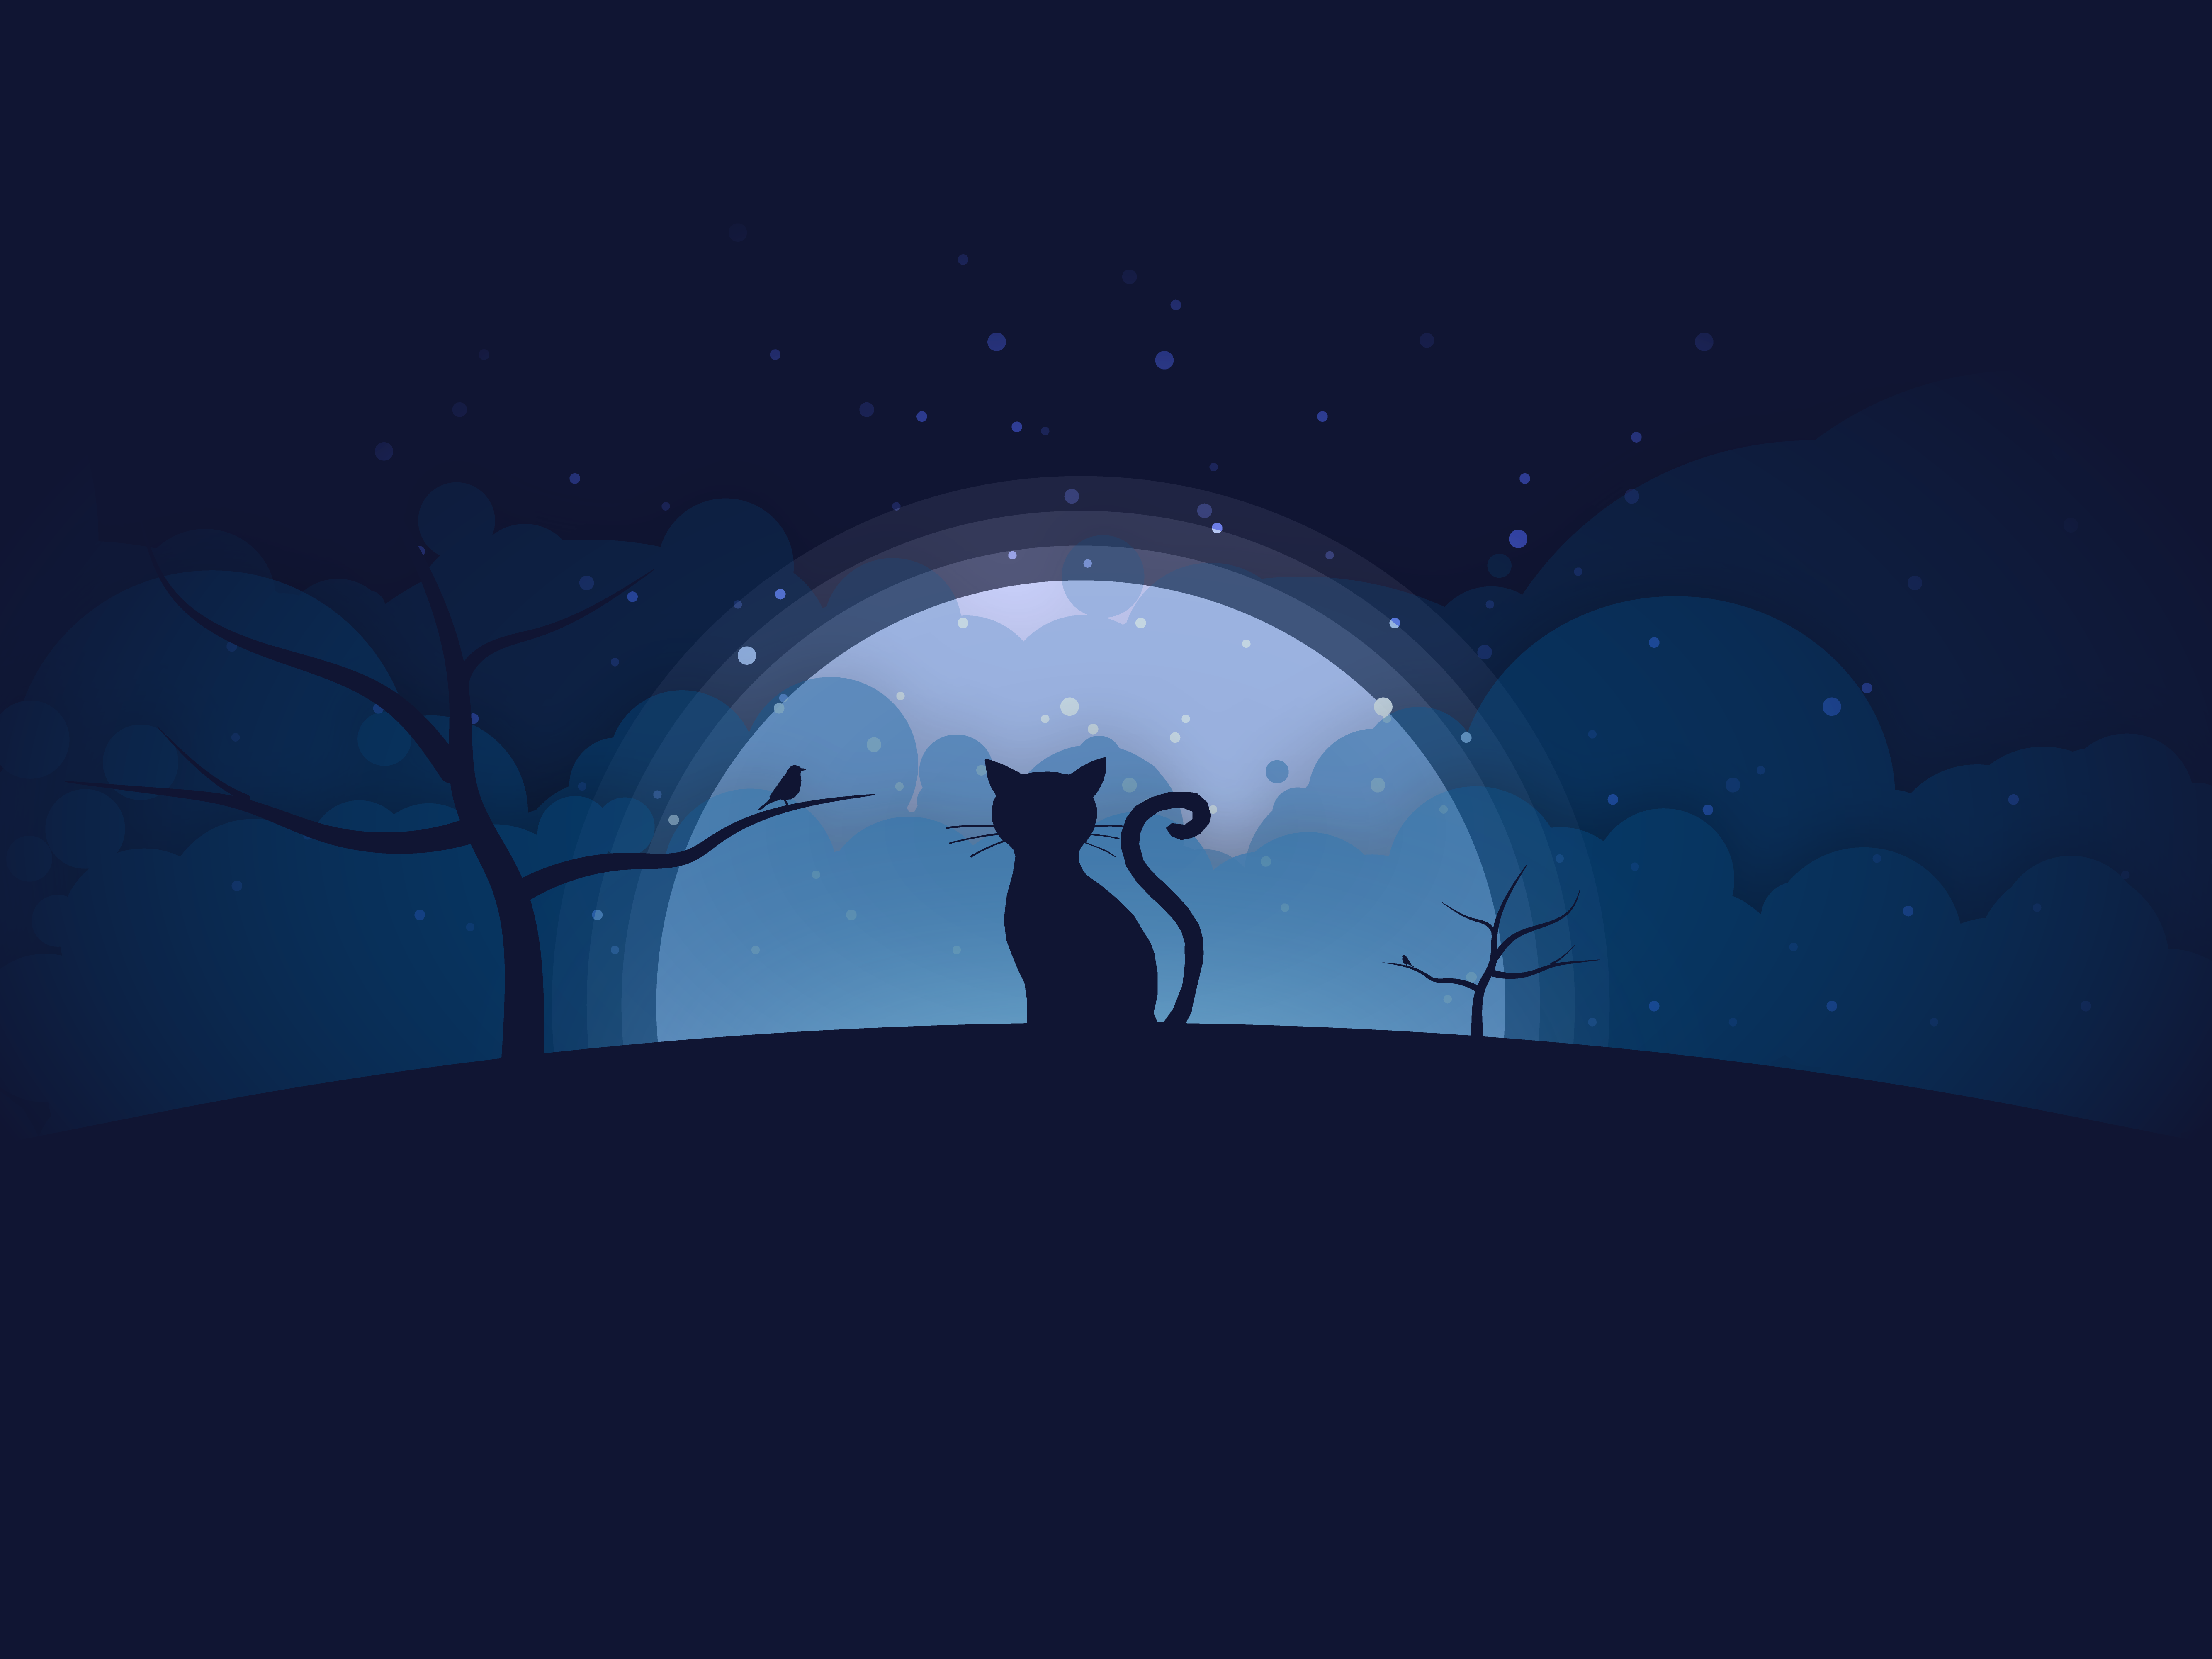 Coraline By Easy Design On Dribbble